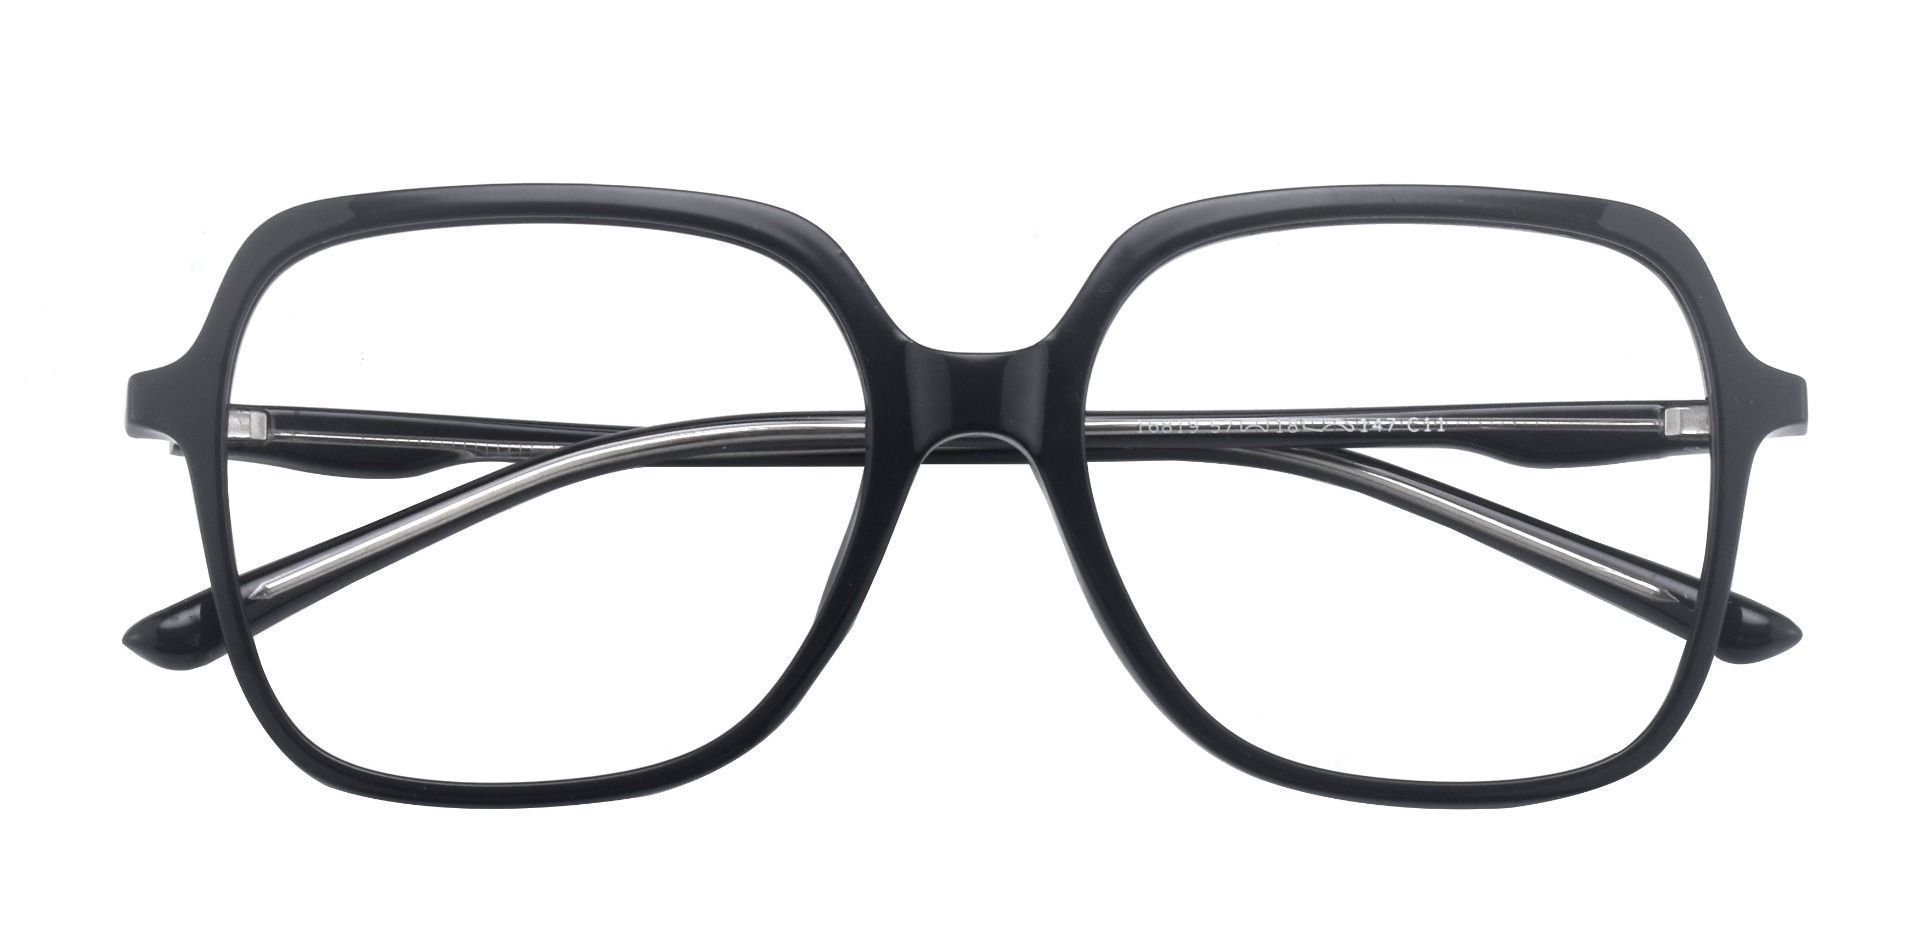 Zion Square Prescription Glasses - Black